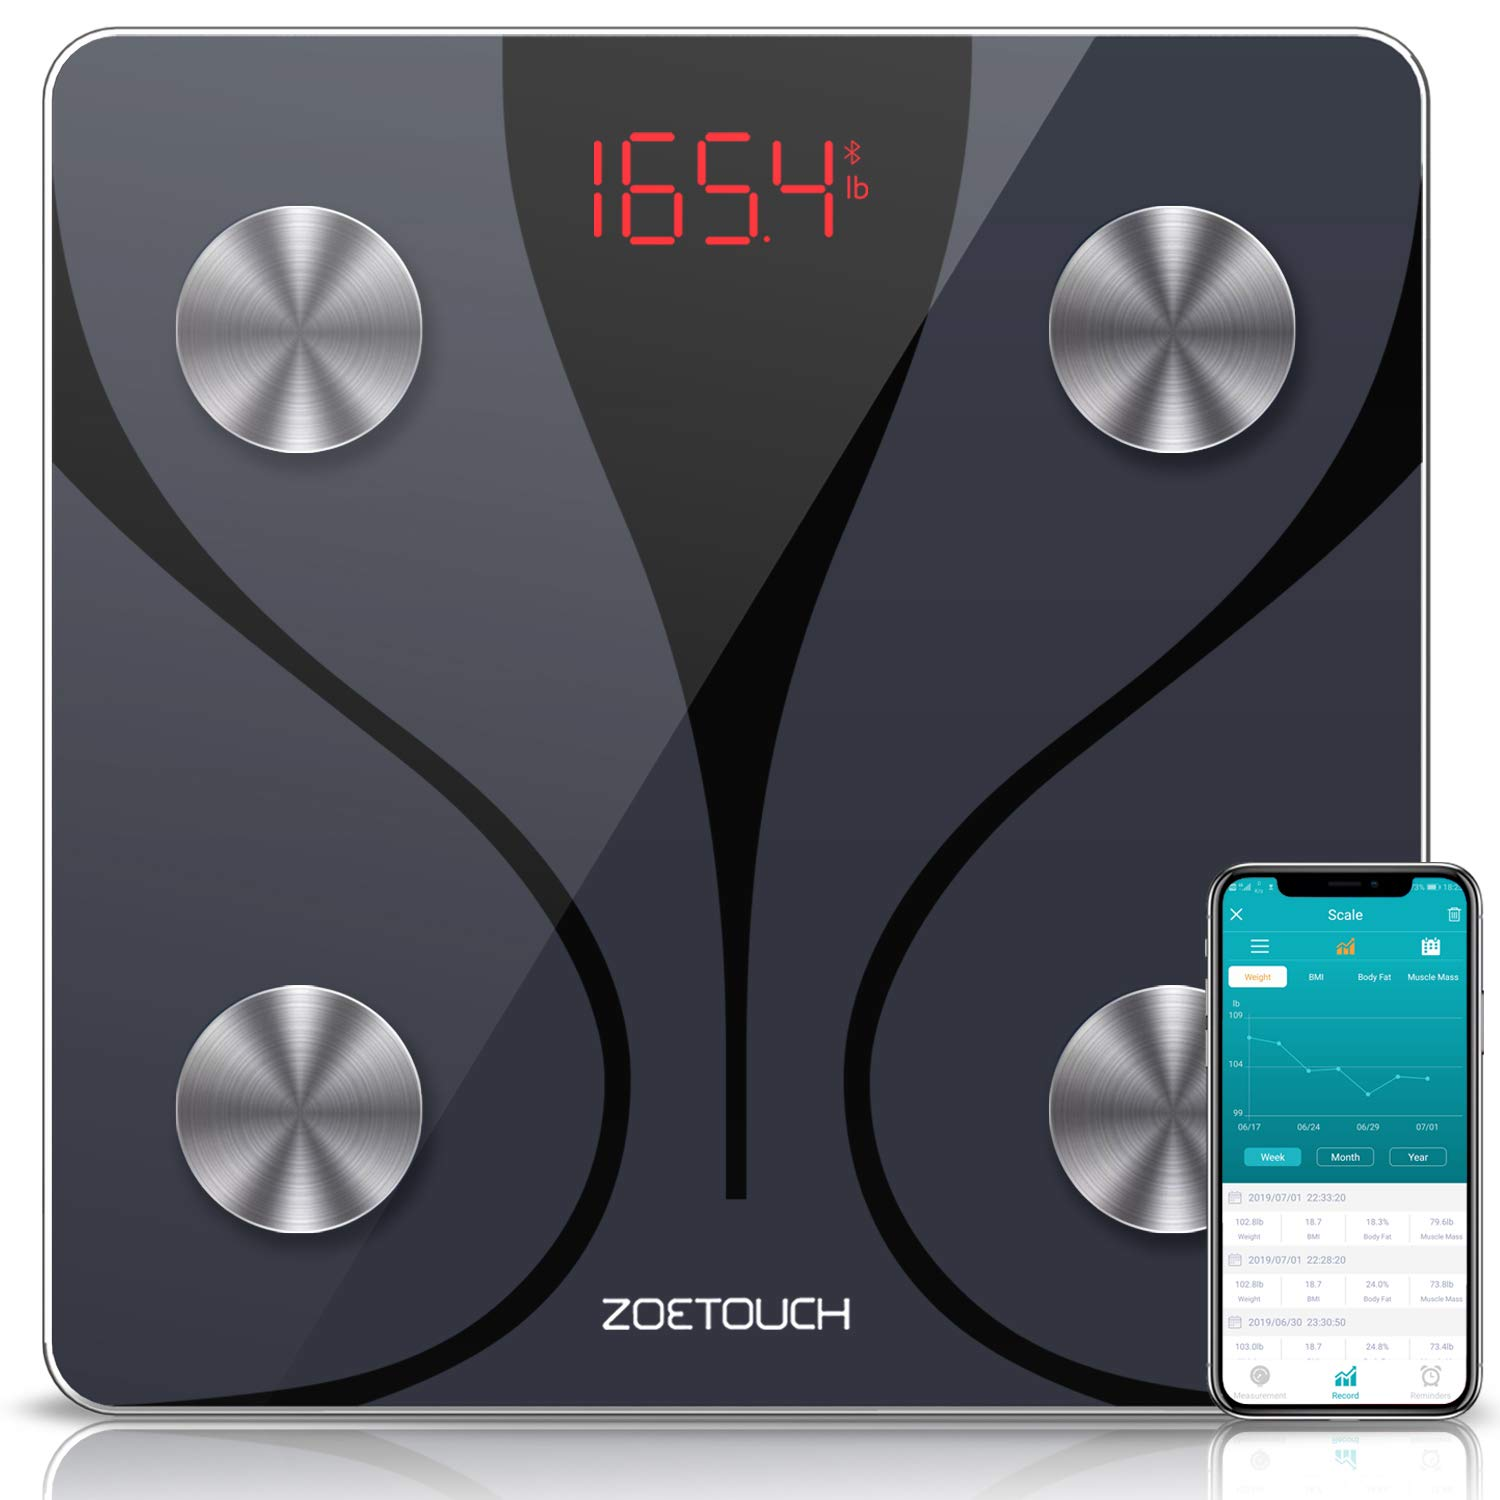 ZOETOUCH Bluetooth Body Fat Scale with iOS & Android App, Smart Digital Bathroom Weight Scale, Body Composition Monitor - Black by 1 BY ONE